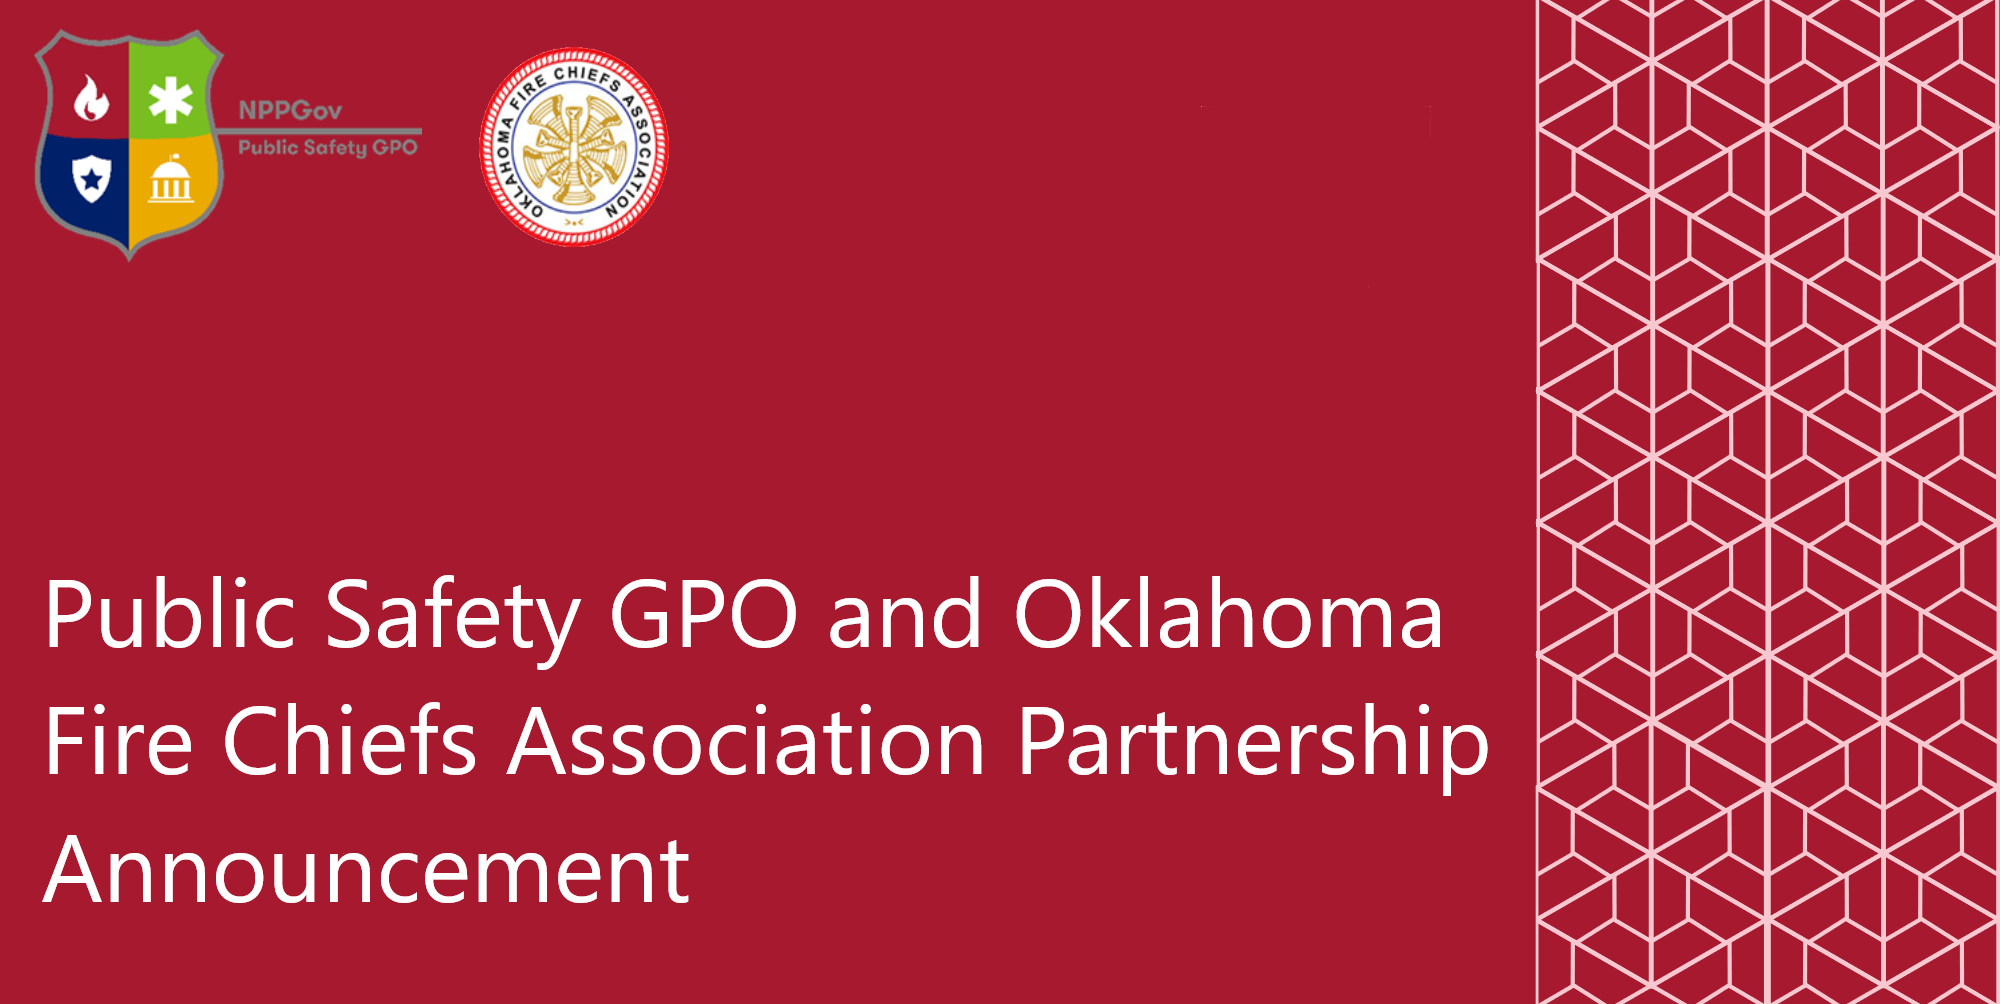 Oklahoma Fire Chiefs Partnership Announcement